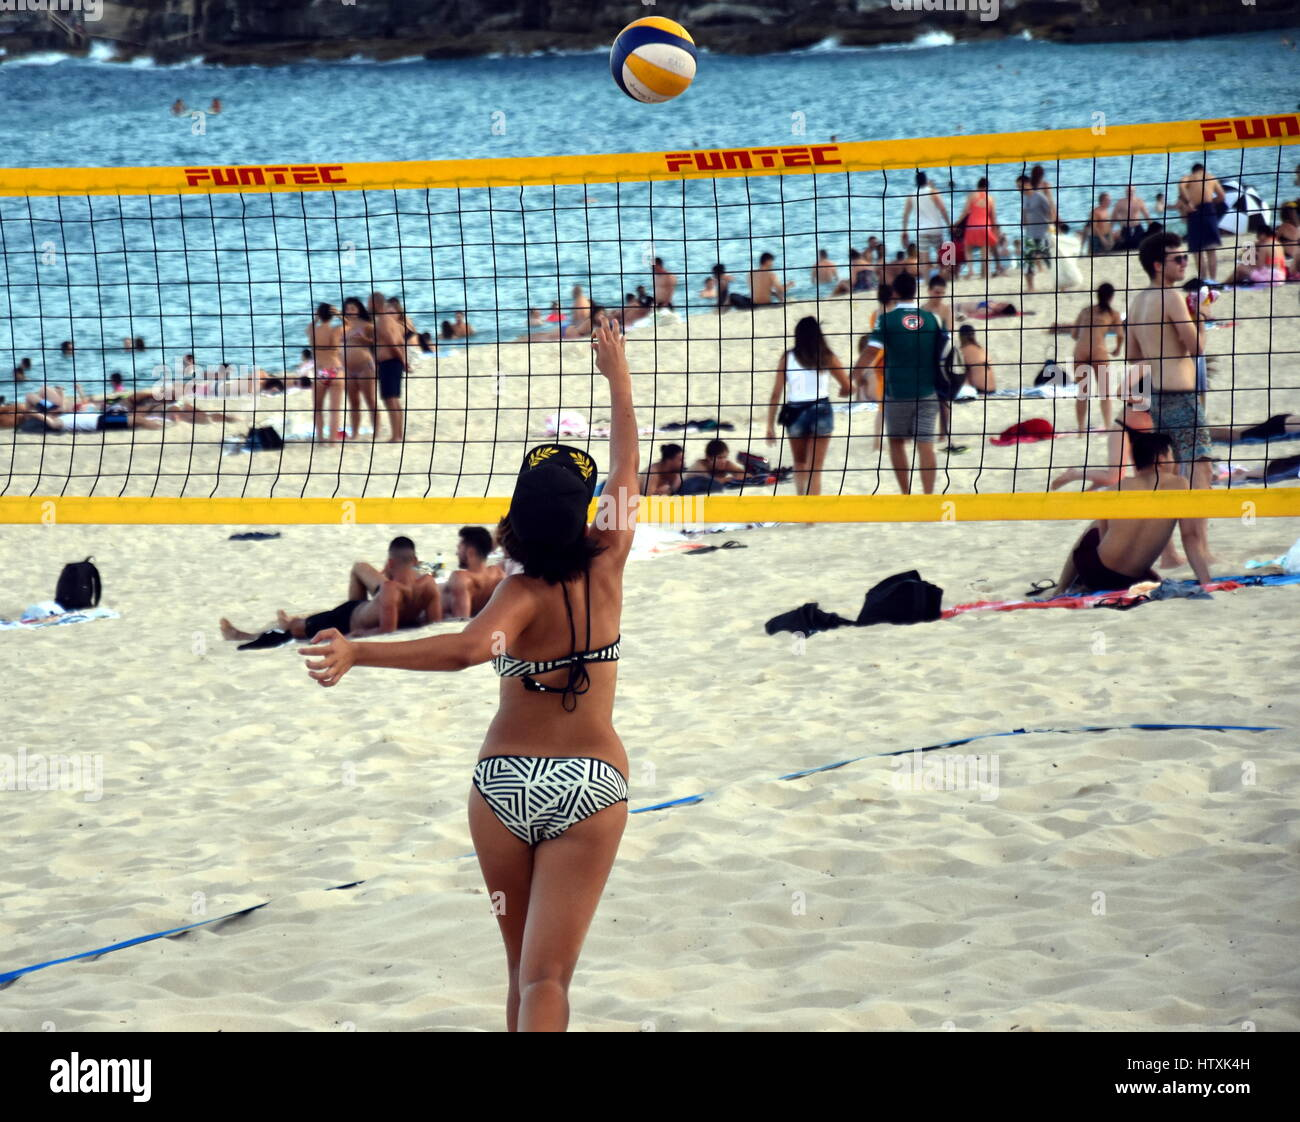 490361a24bb Sydney, Australia - Feb 5, 2017. Girl in bikini playing beach volleyball on